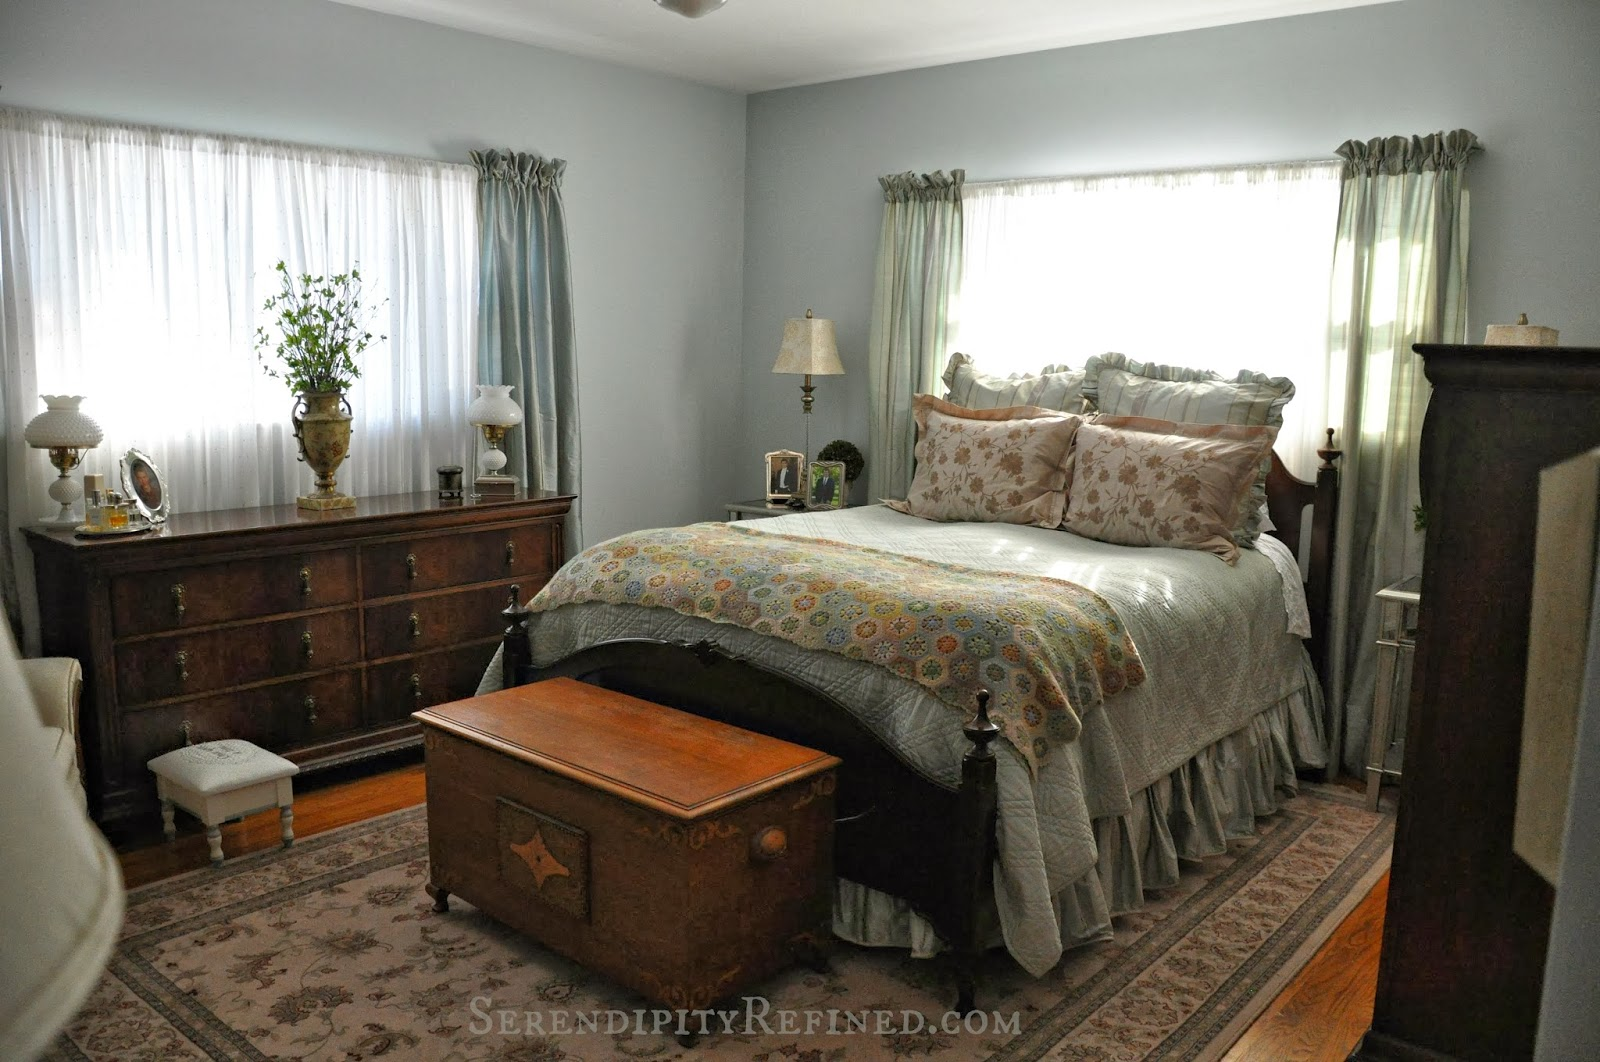 Serendipity Refined Blog Bedroom Progress Photos French Farmhouse Update